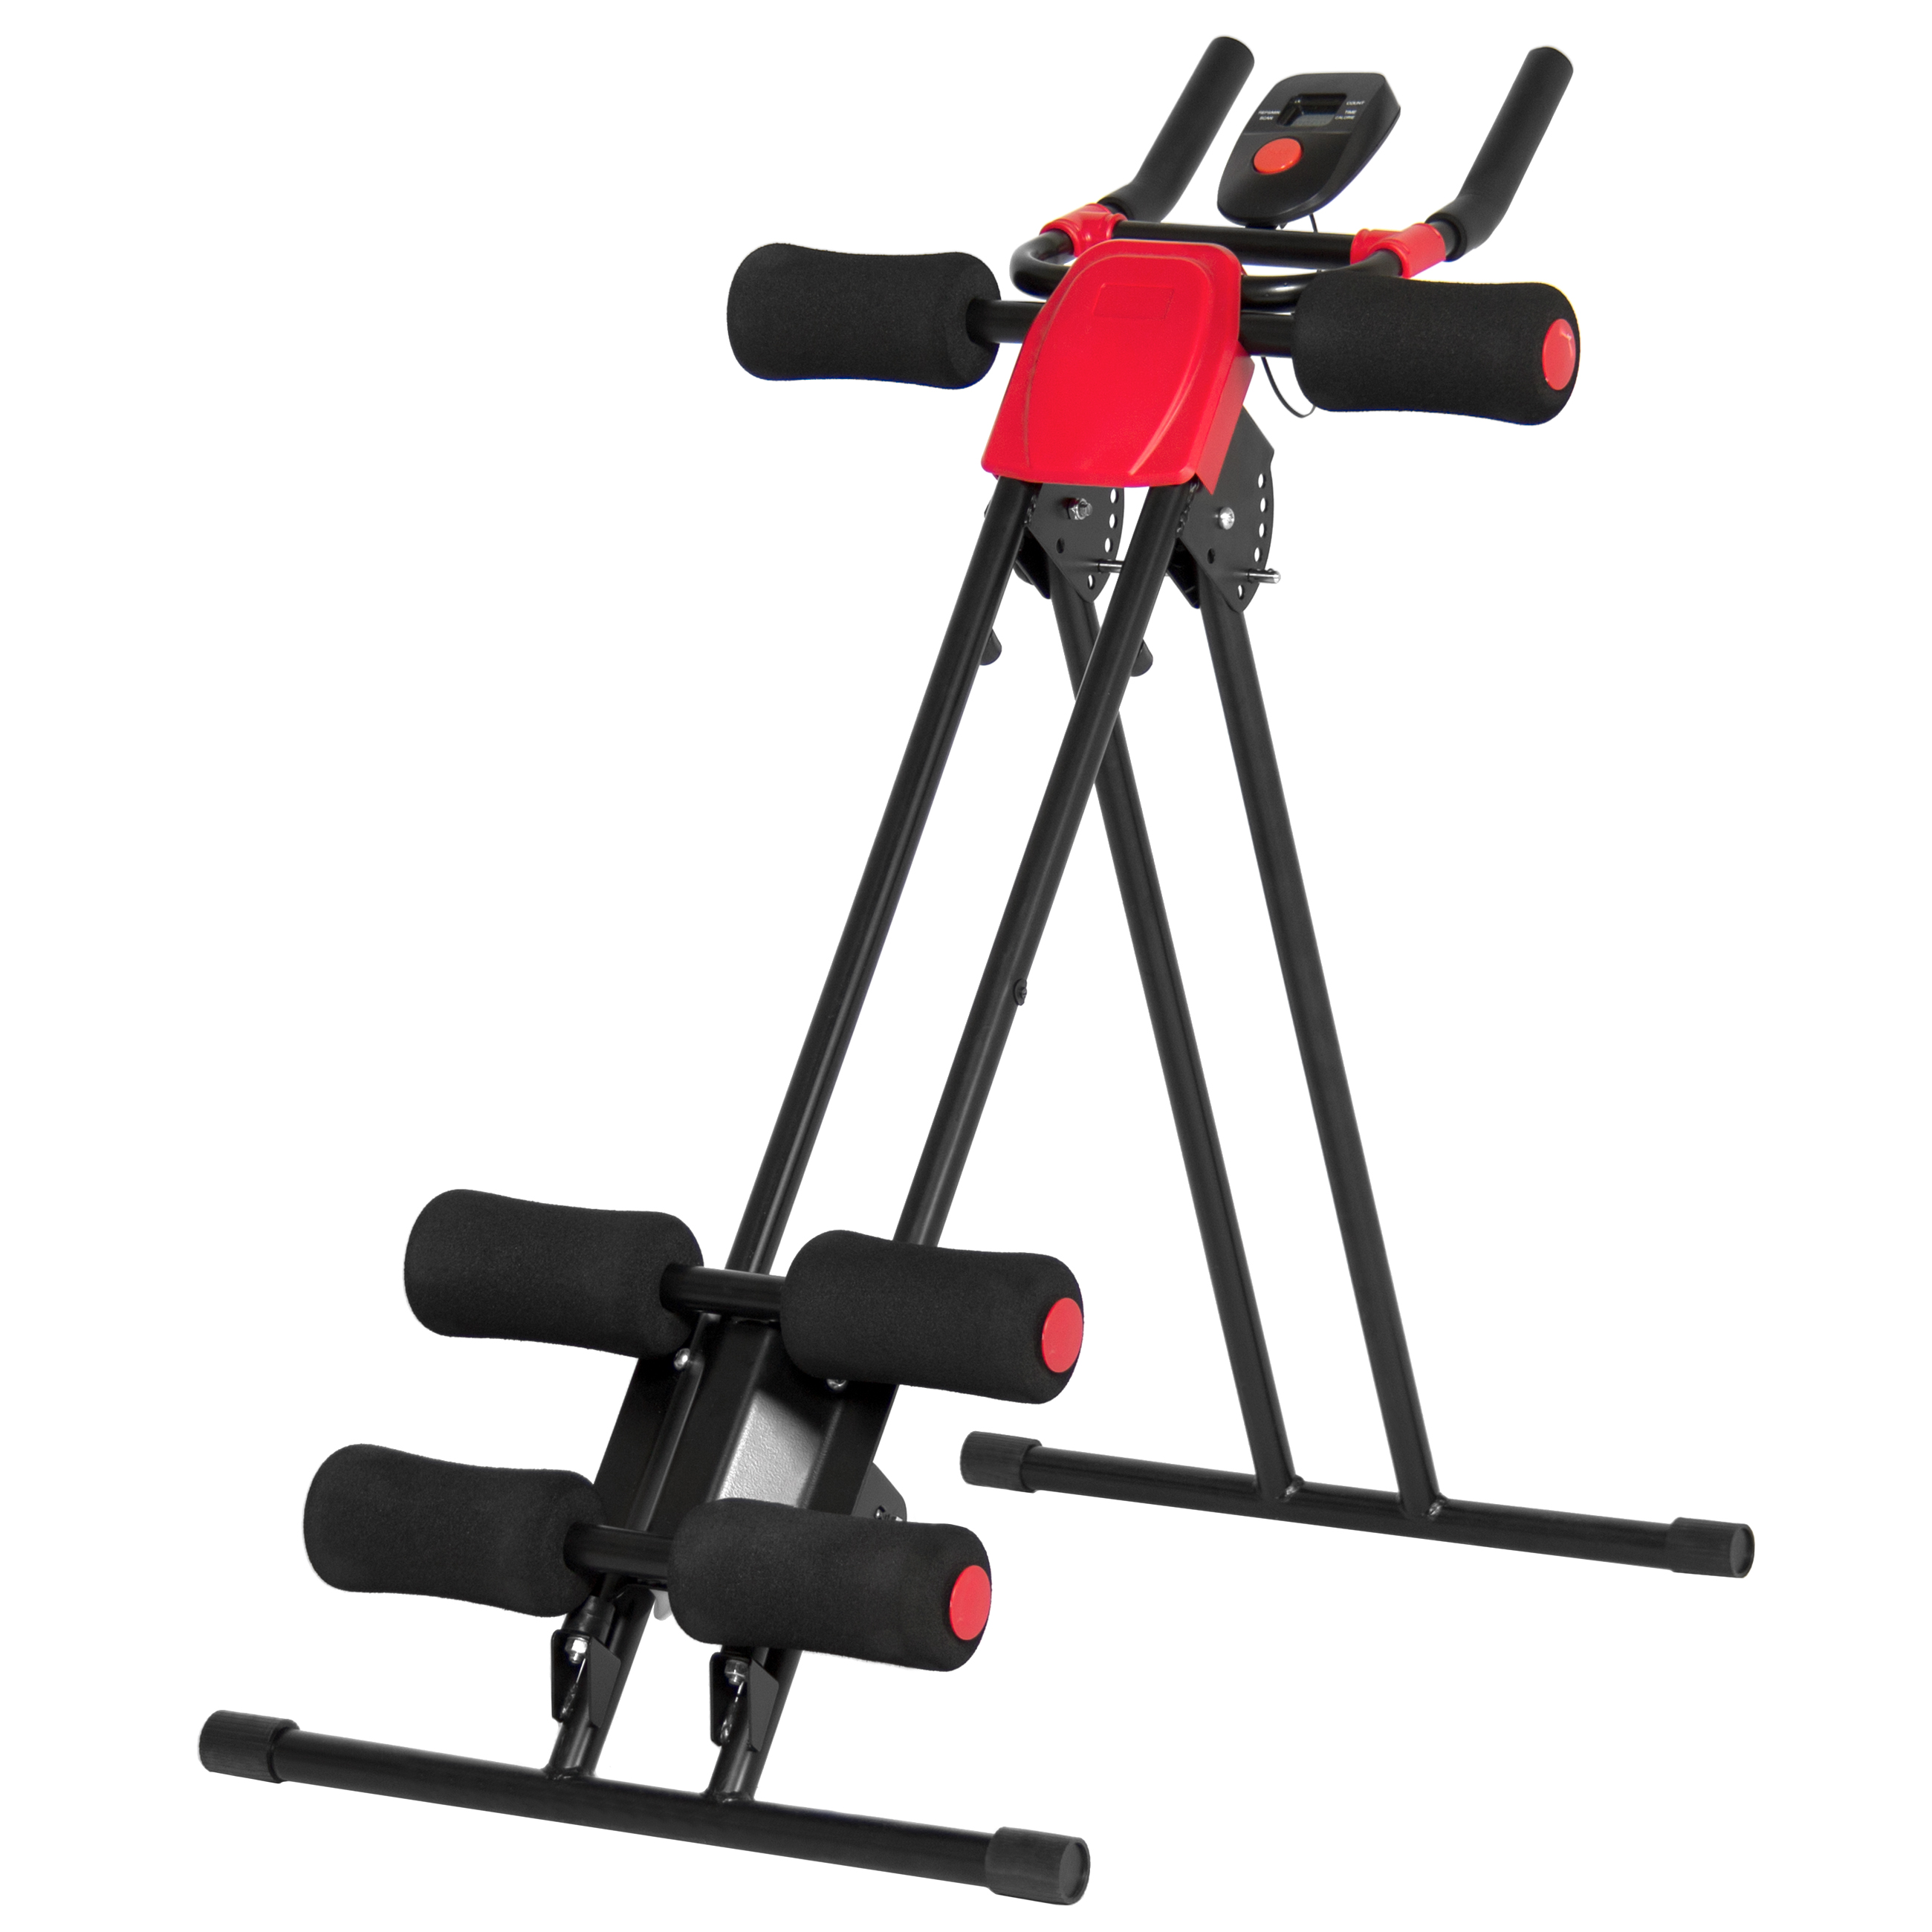 Best Choice Products Adjustable Abdominal Trainer Core Ab Cruncher W/ LCD Display - Red/Black